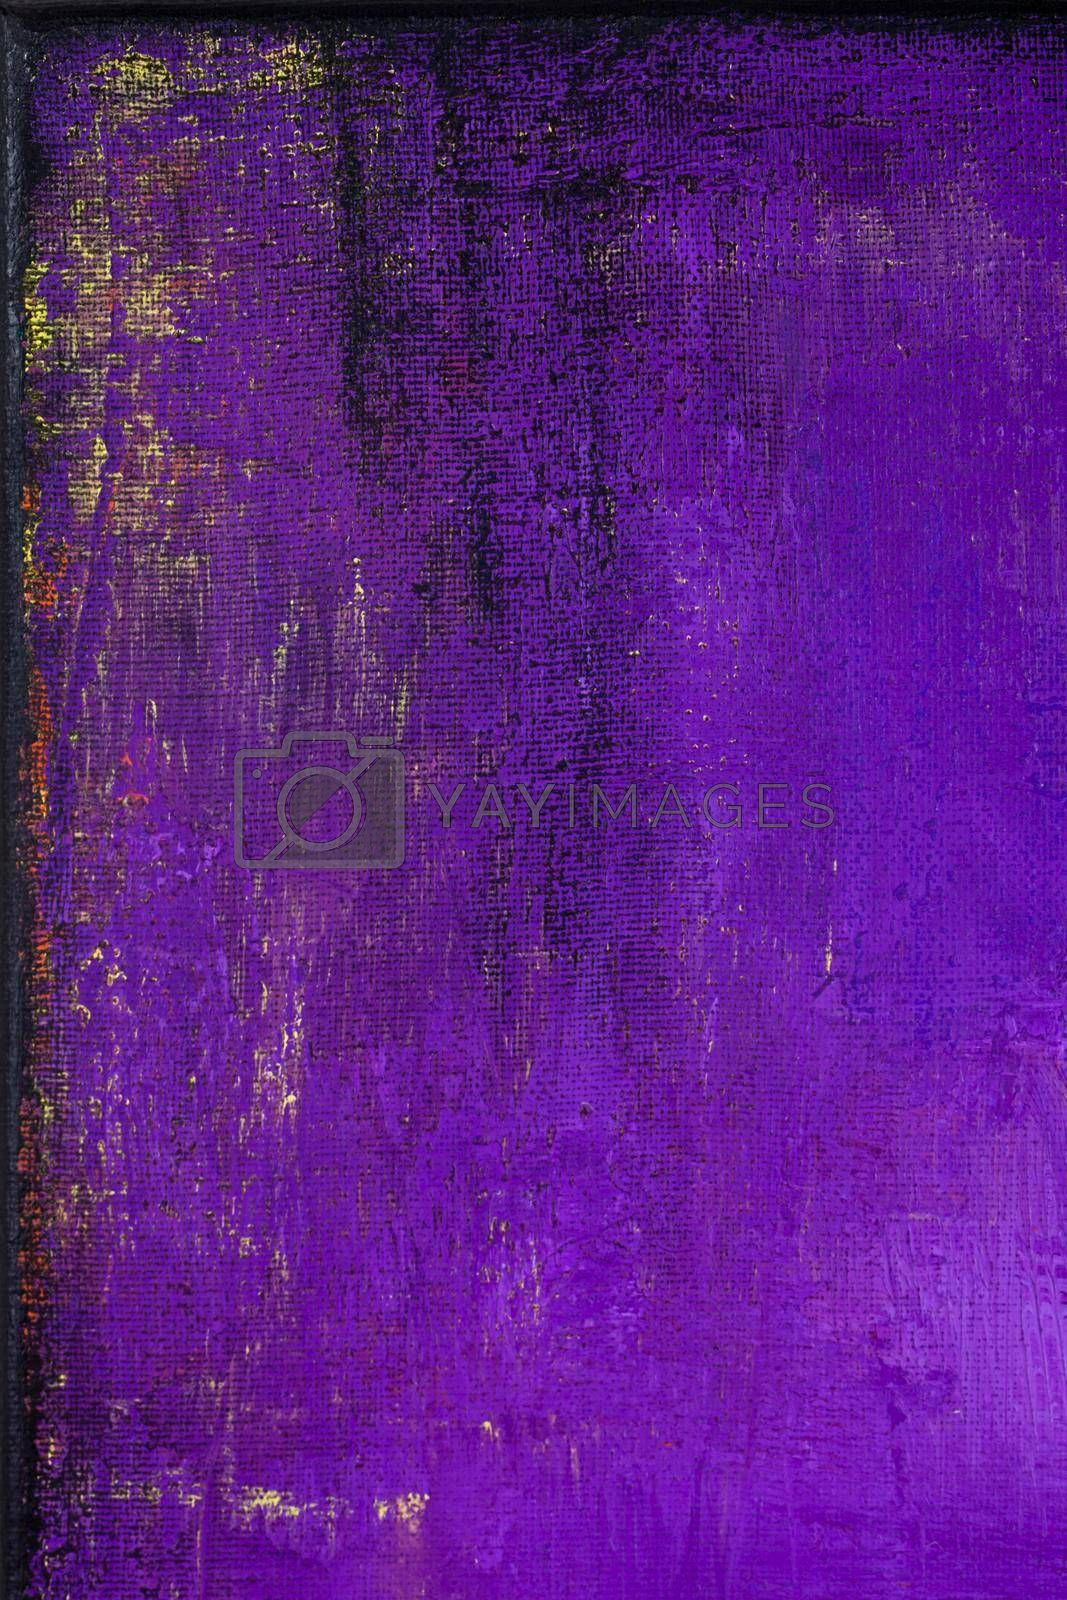 Purple grunge colored texture background. Decorative painting.